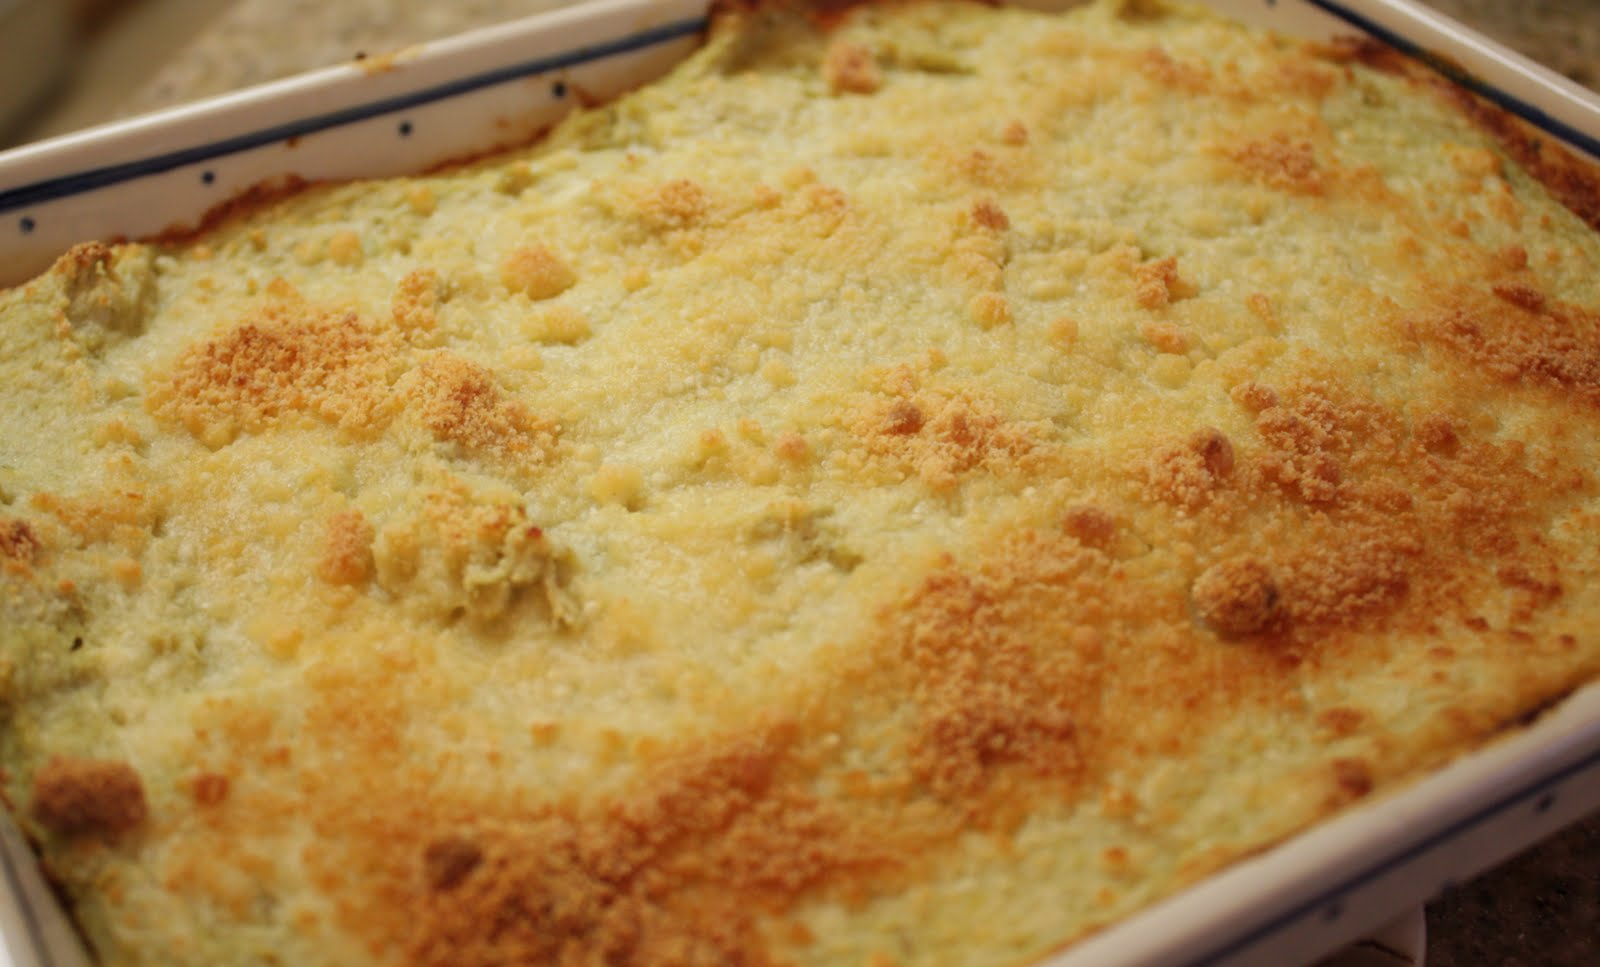 Baked Artichoke Dip - Home - Kiss My Whisk